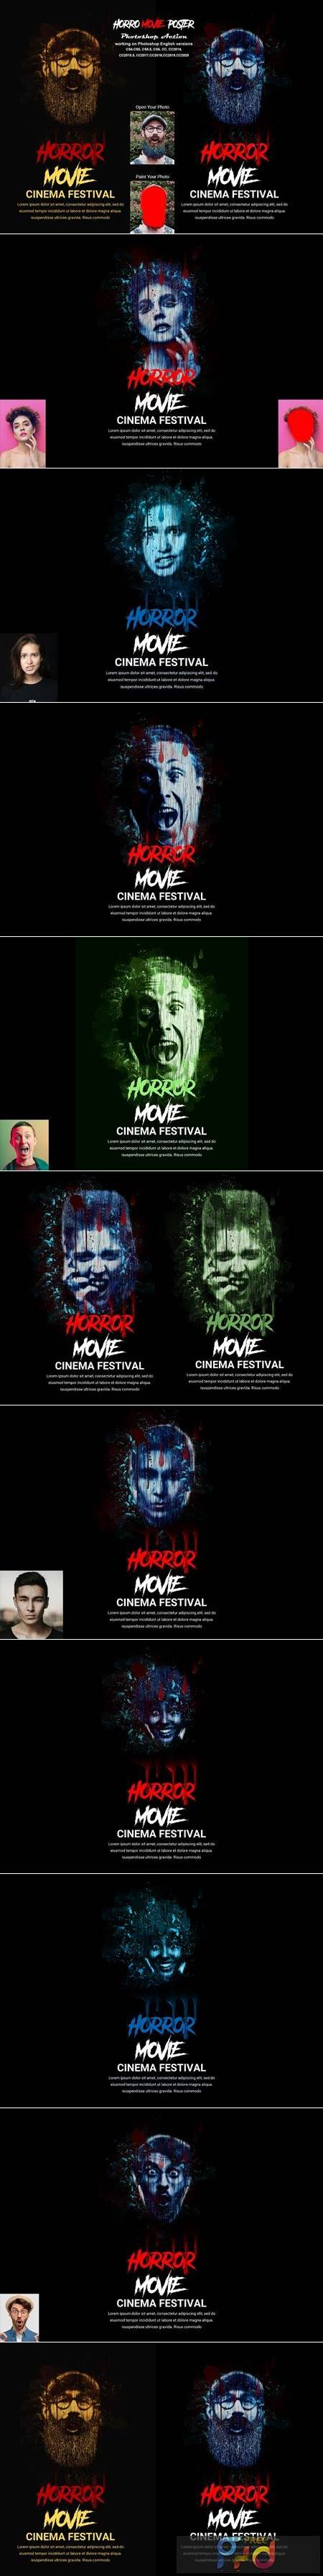 Horror Movie Poster Photoshop Action 5505575 1